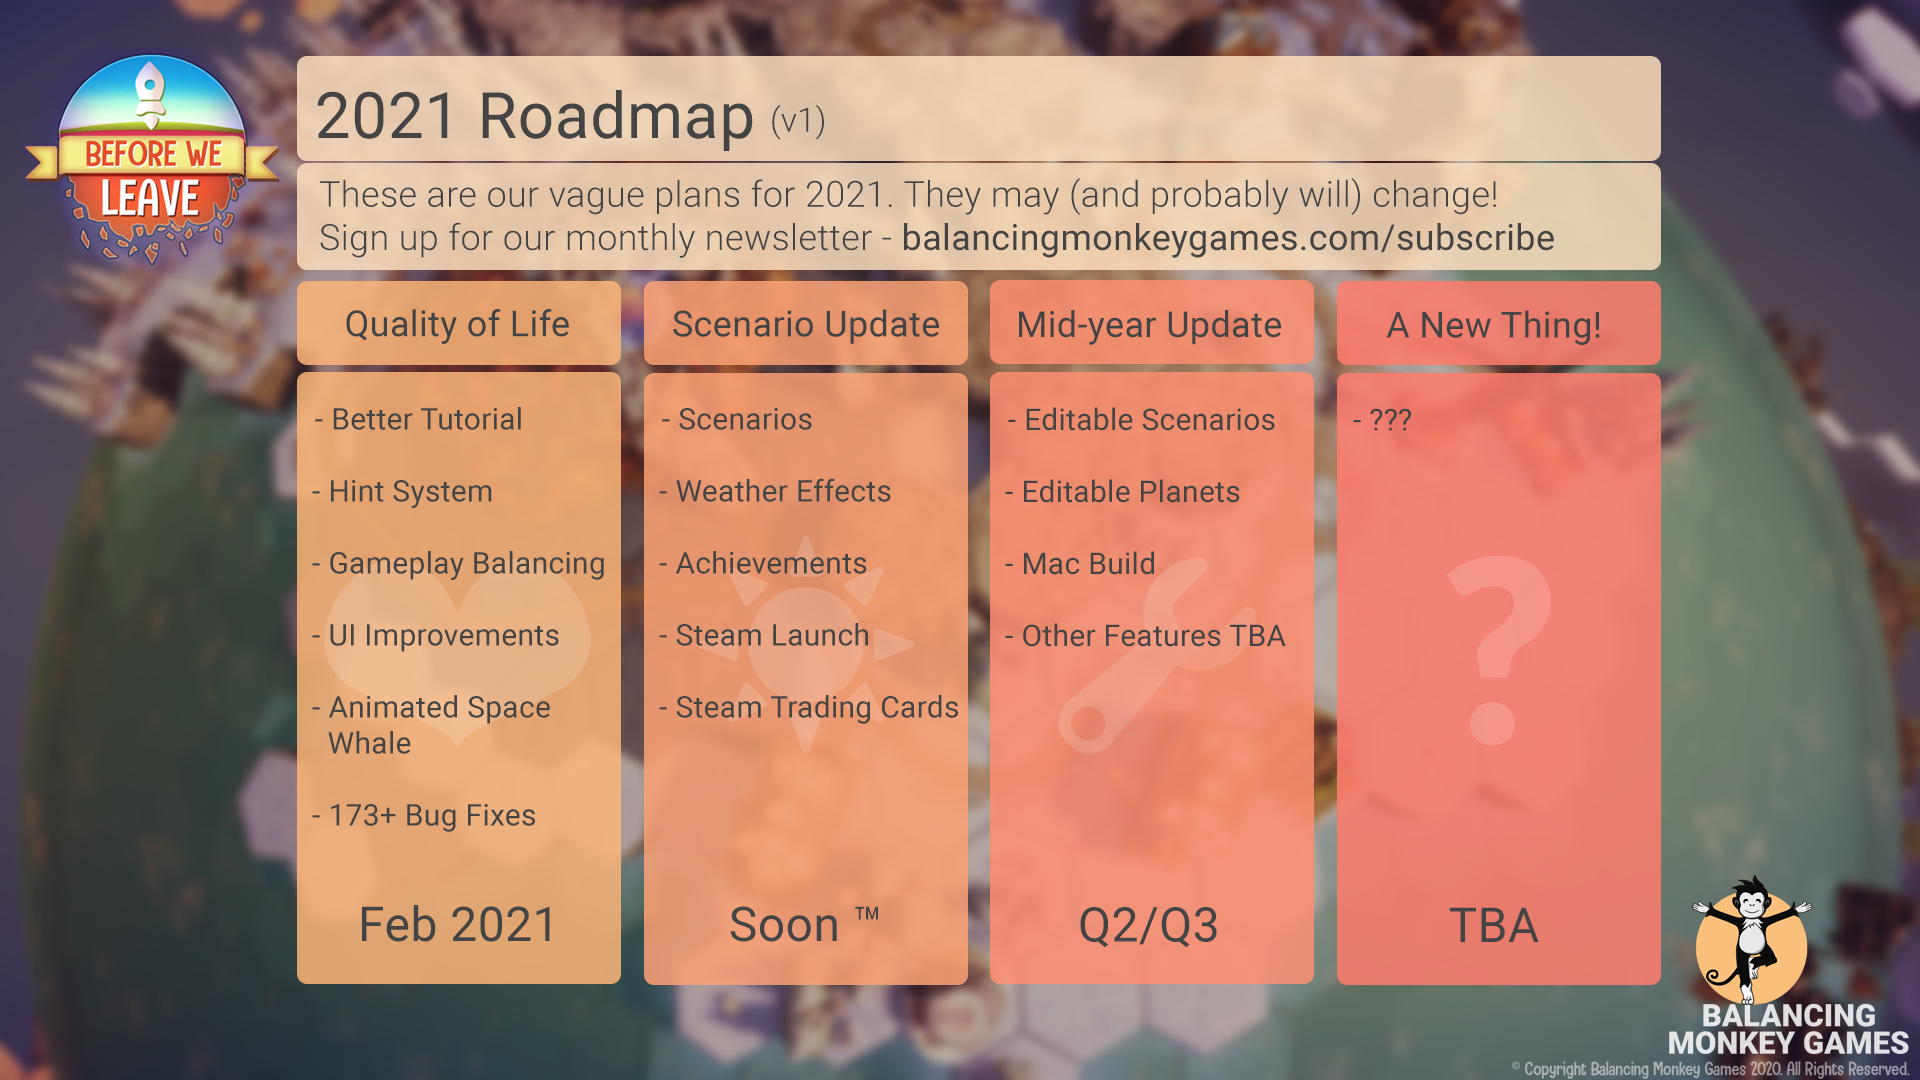 An image of Balancing Monkey Games' 2021 Roadmap, including updates like a Steam release and player-editable planets!